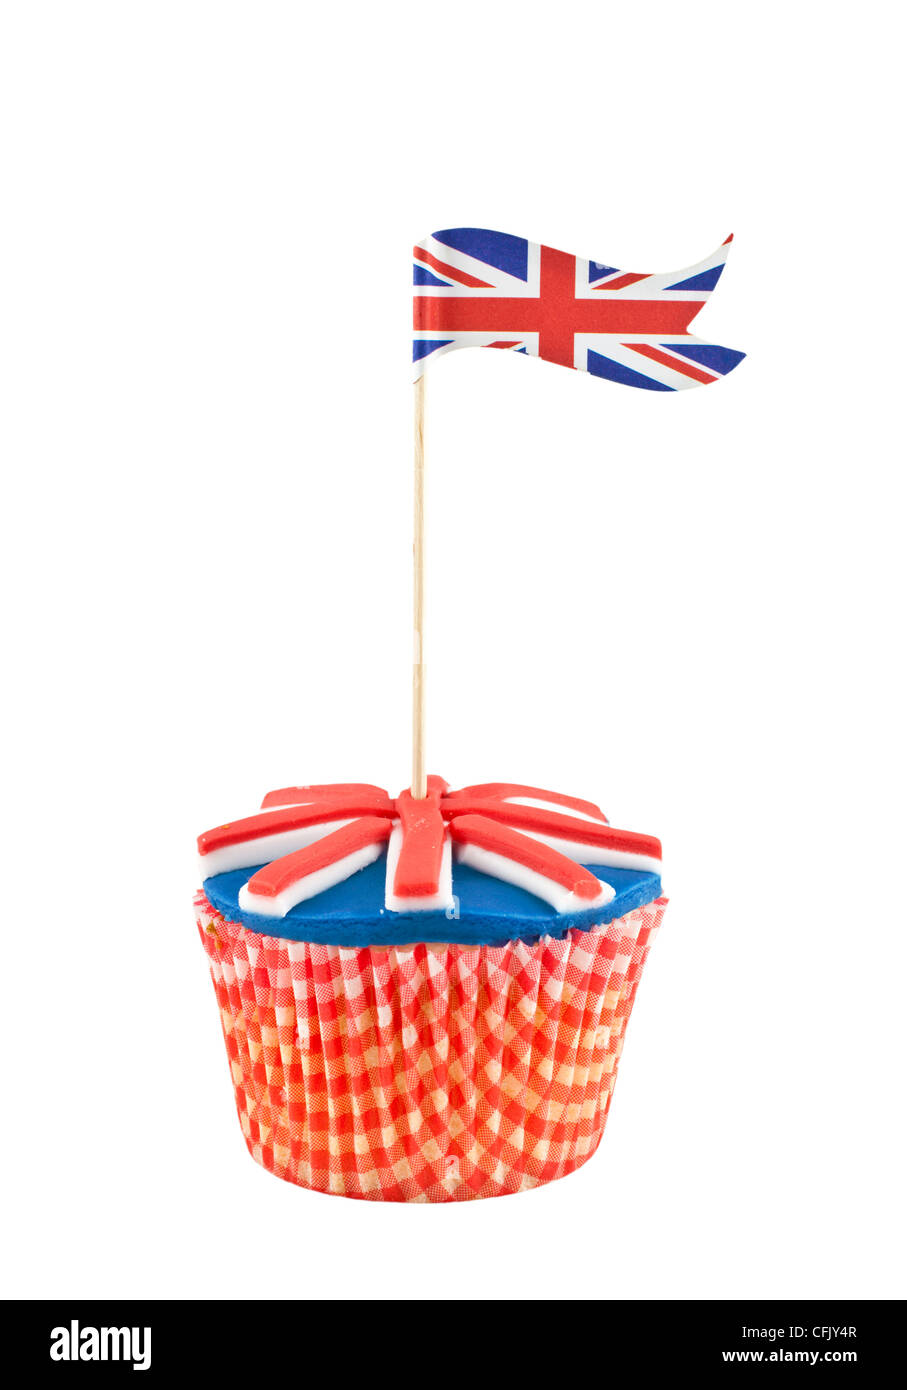 Union jack flag cupcake Photo Stock